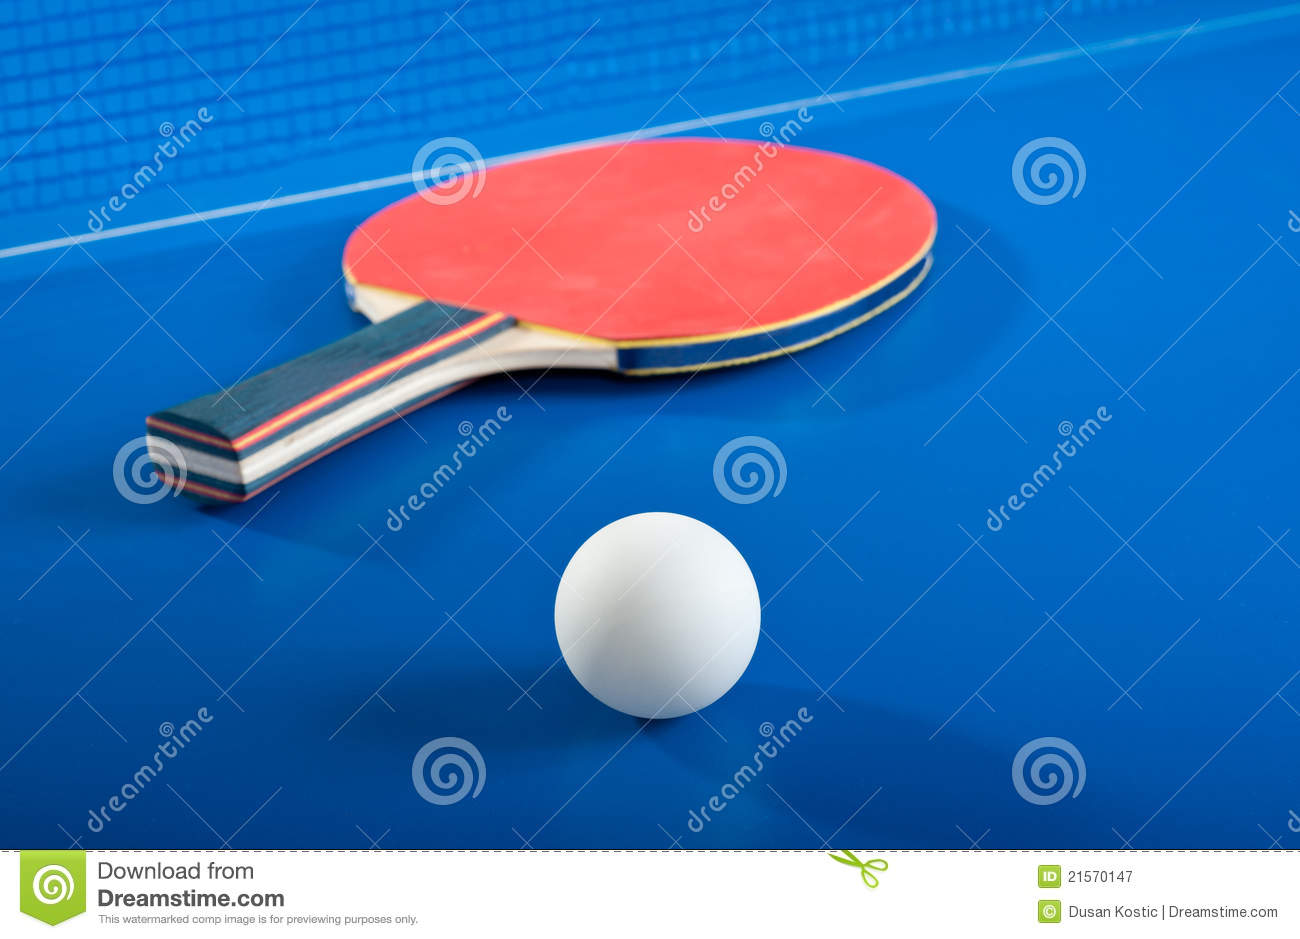 Equipment for table tennis royalty free stock photography image 21570147 - Equipment for table tennis ...